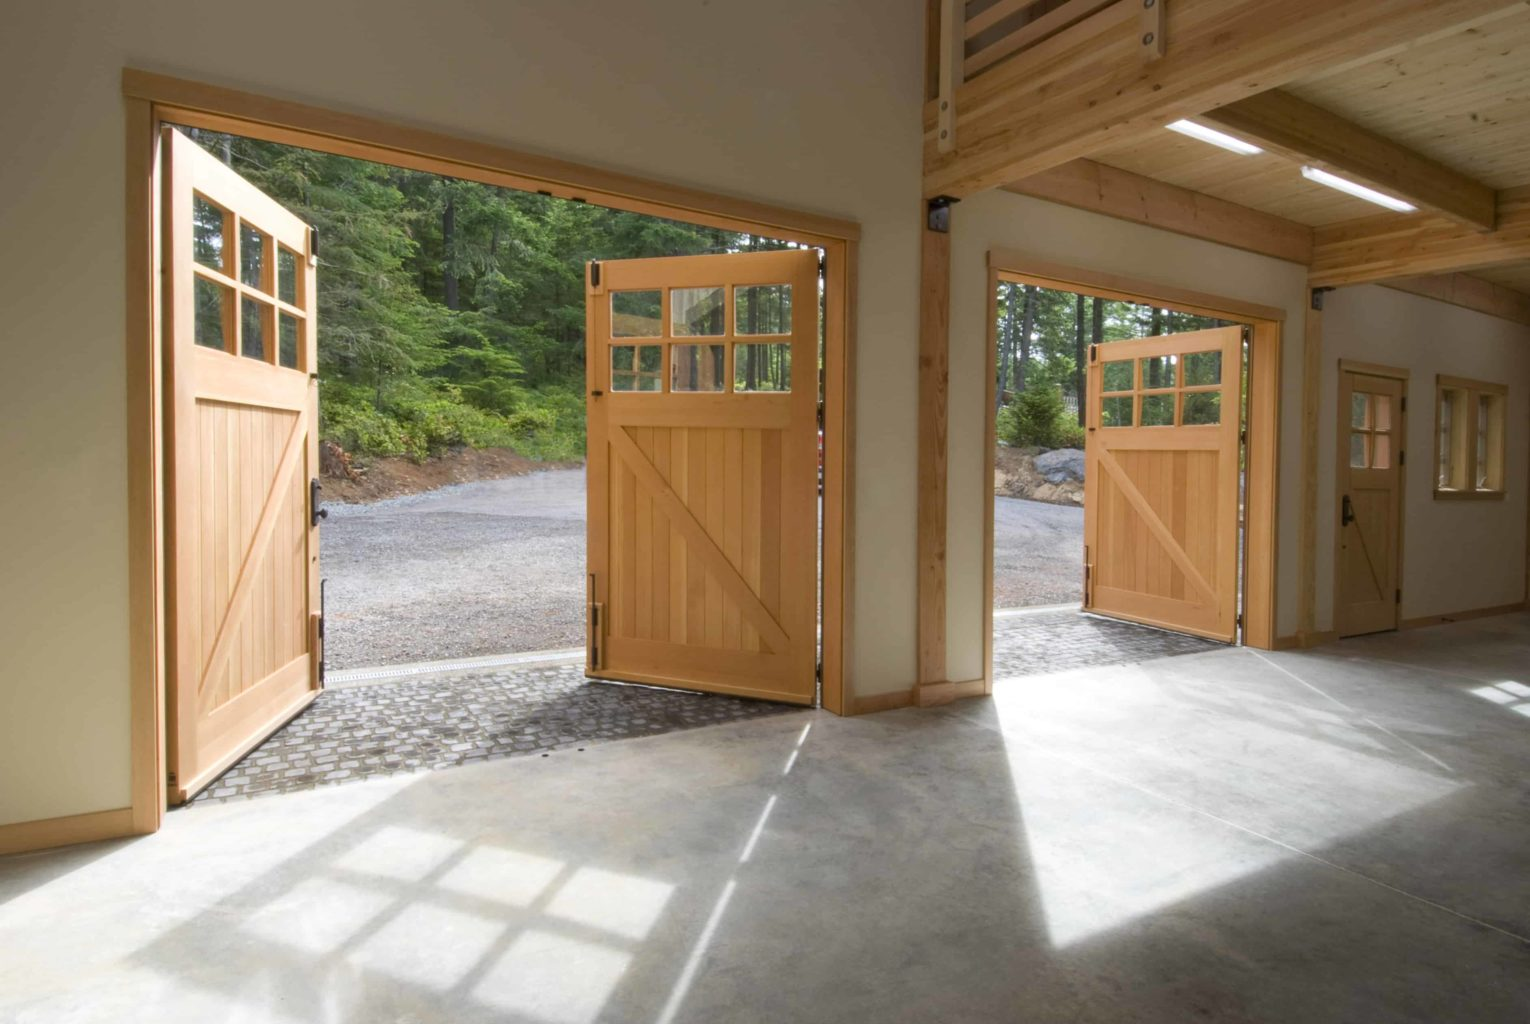 49. CARRIAGE: CL05 Design – Square top, (2x3) lites w/ curved mullions, Z brace w/ tongue + groove panels, Western Red Cedar, w/ bean tip strap hinges & ENTRY: ECL04 Design – Square top, (2x2) lites w/ curved mullions, Z brace w/ tongue + groove panels, Western Red Cedar, w/ butt hinges; Orcas Island, WA